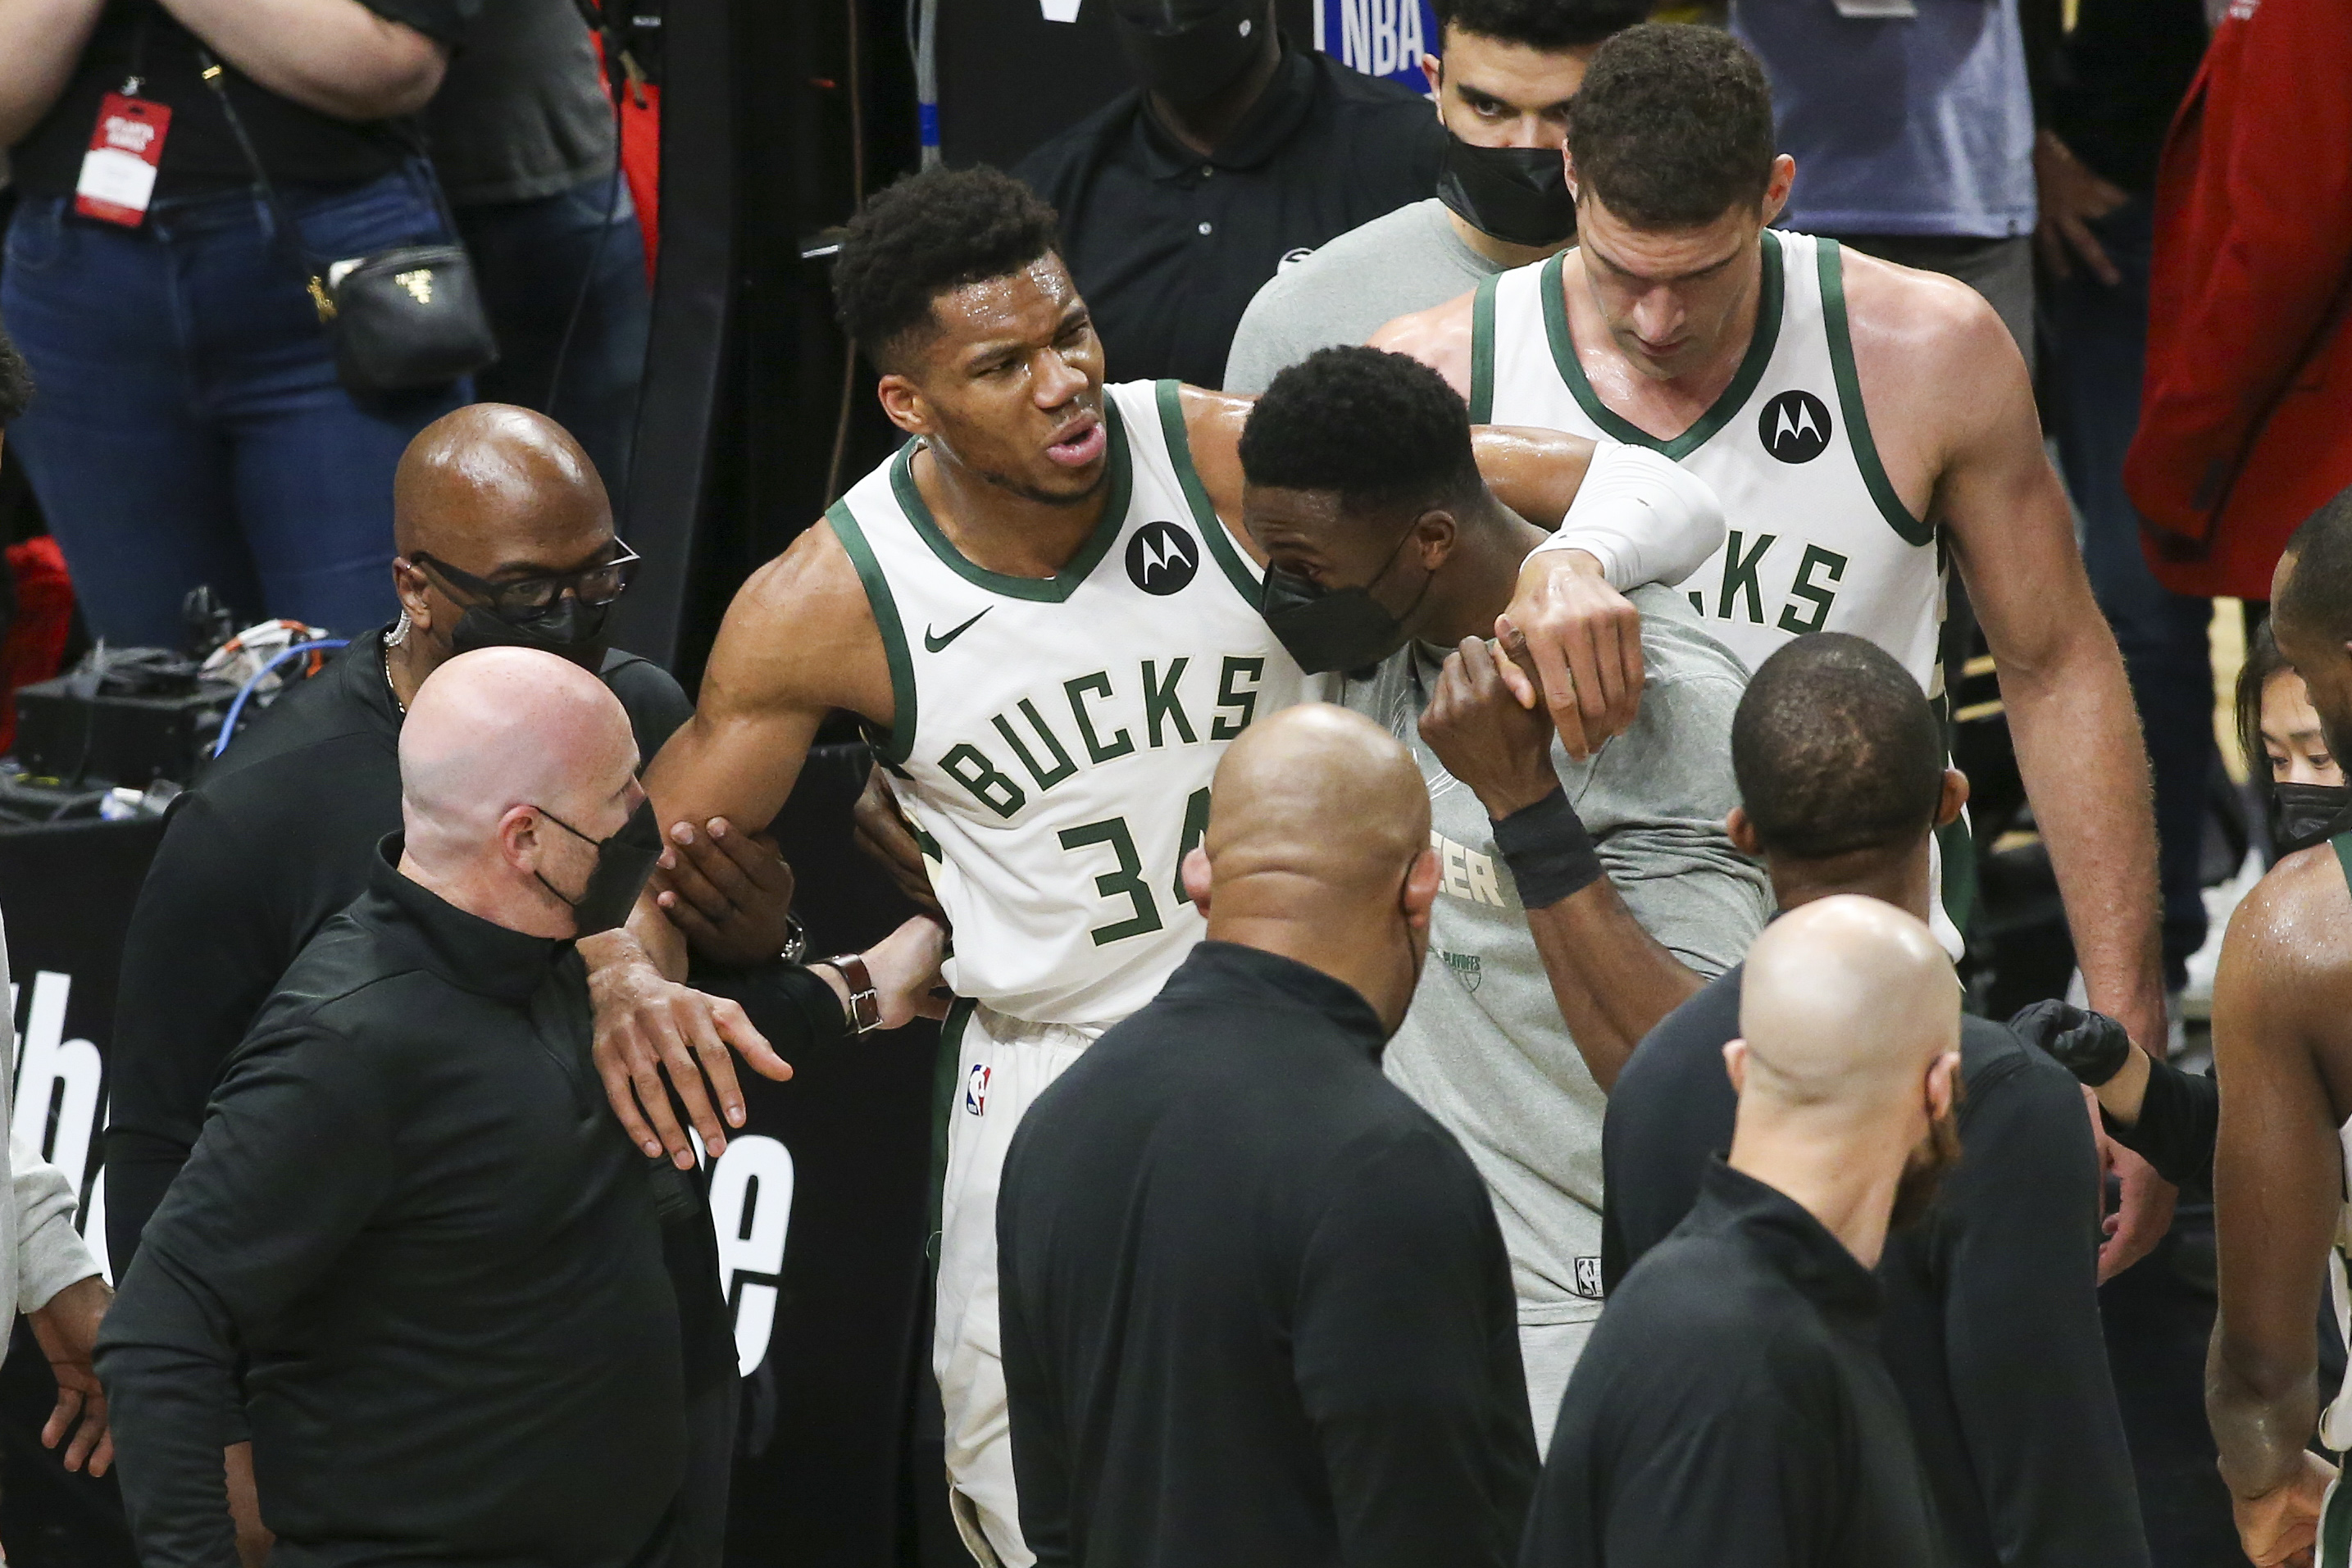 Jun 29, 2021; Atlanta, Georgia, USA; Milwaukee Bucks forward Giannis Antetokounmpo (34) is helped off the court with an injury against the Atlanta Hawks in the third quarter during game four of the Eastern Conference Finals for the 2021 NBA Playoffs at State Farm Arena. Mandatory Credit: Brett Davis-USA TODAY Sports